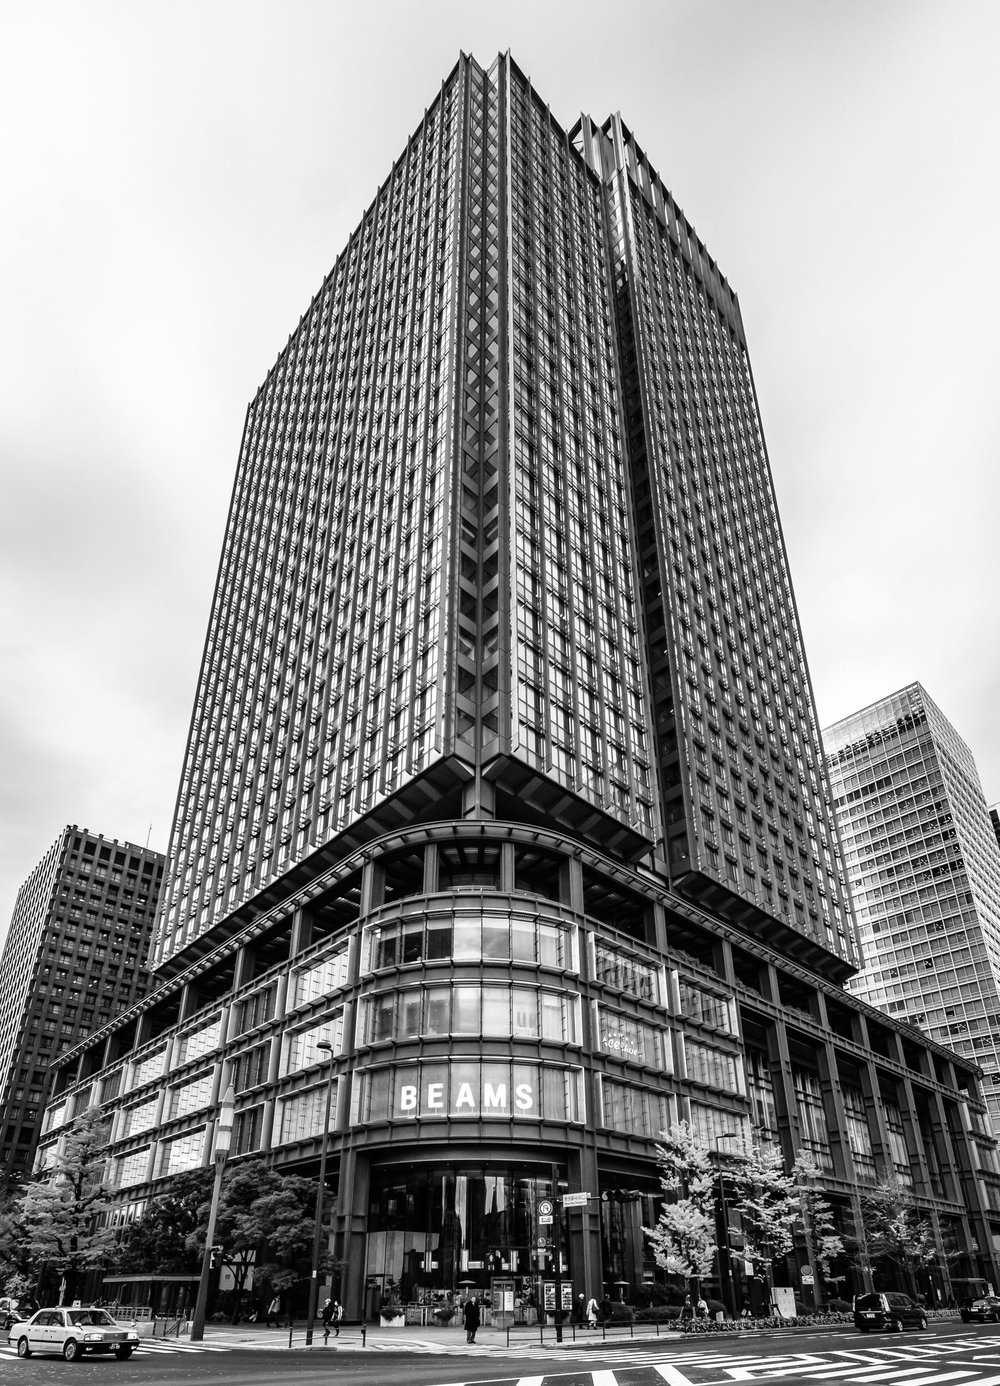 The Shin-Marunouchi Building